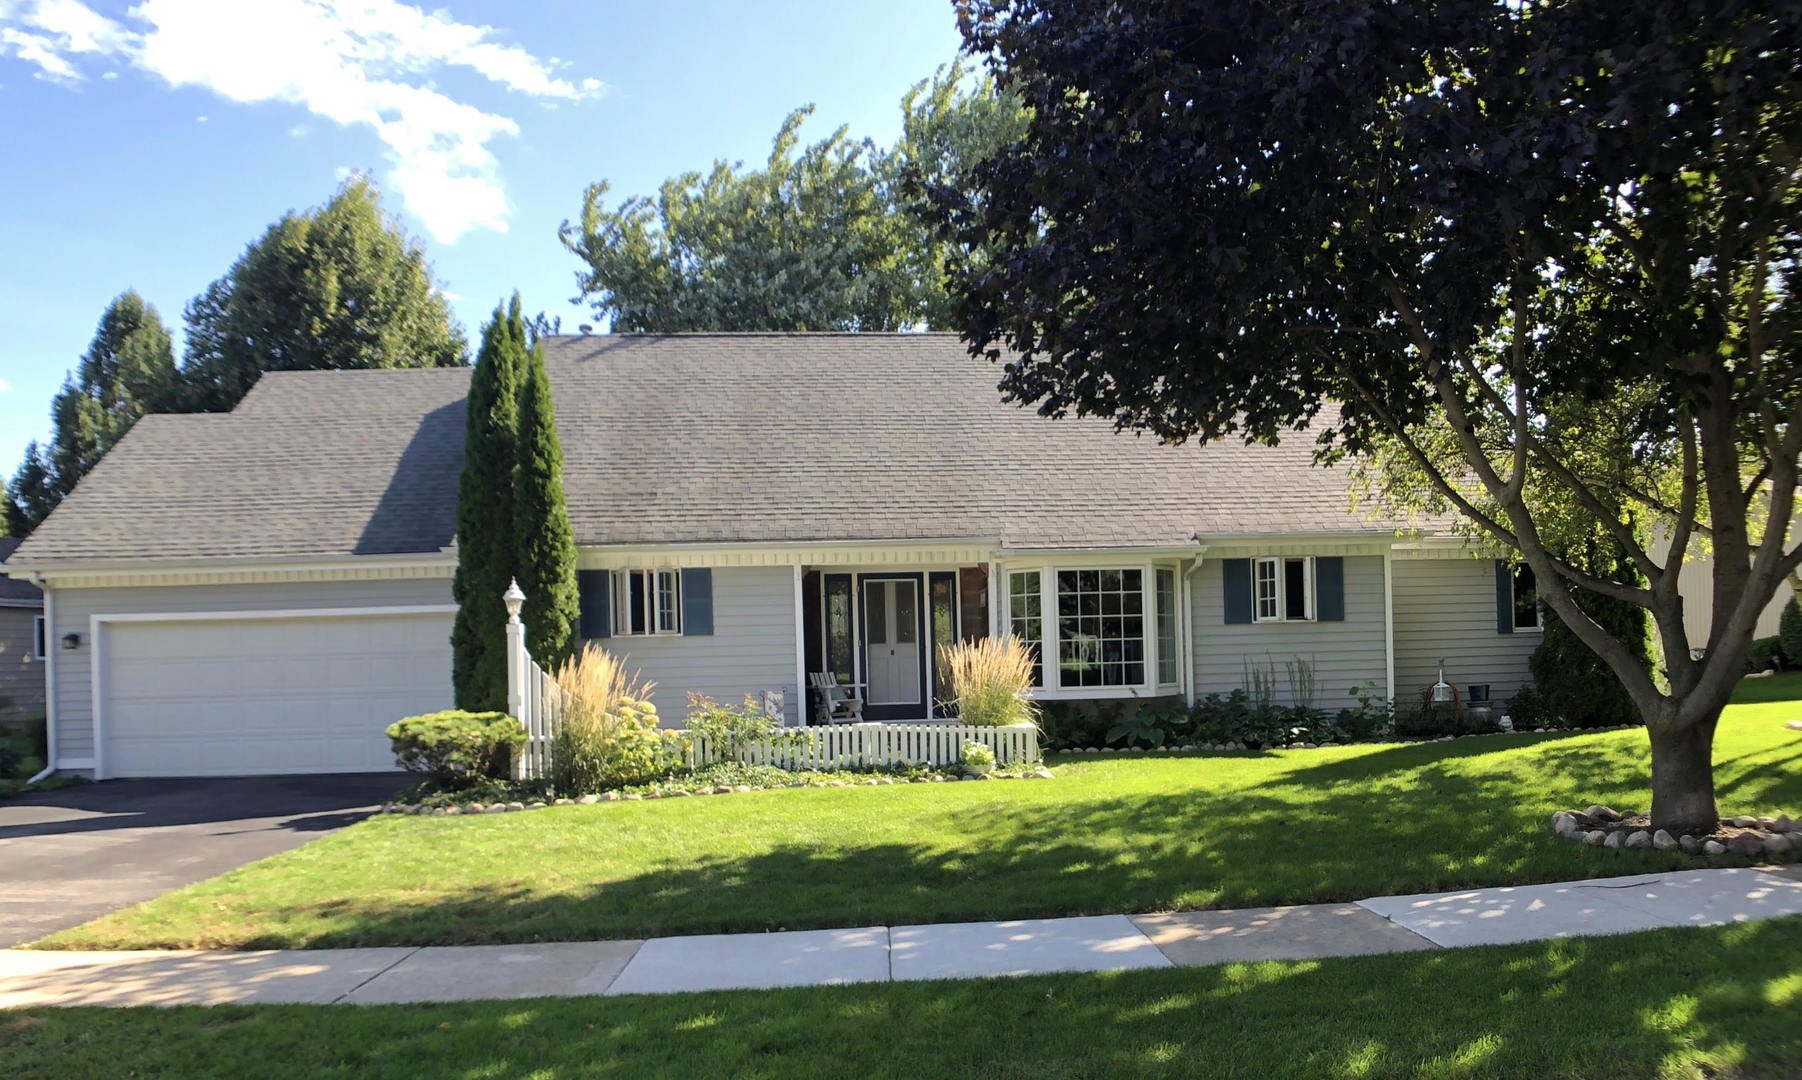 2 Bedroom Homes For Sale In Woodstock Illinois